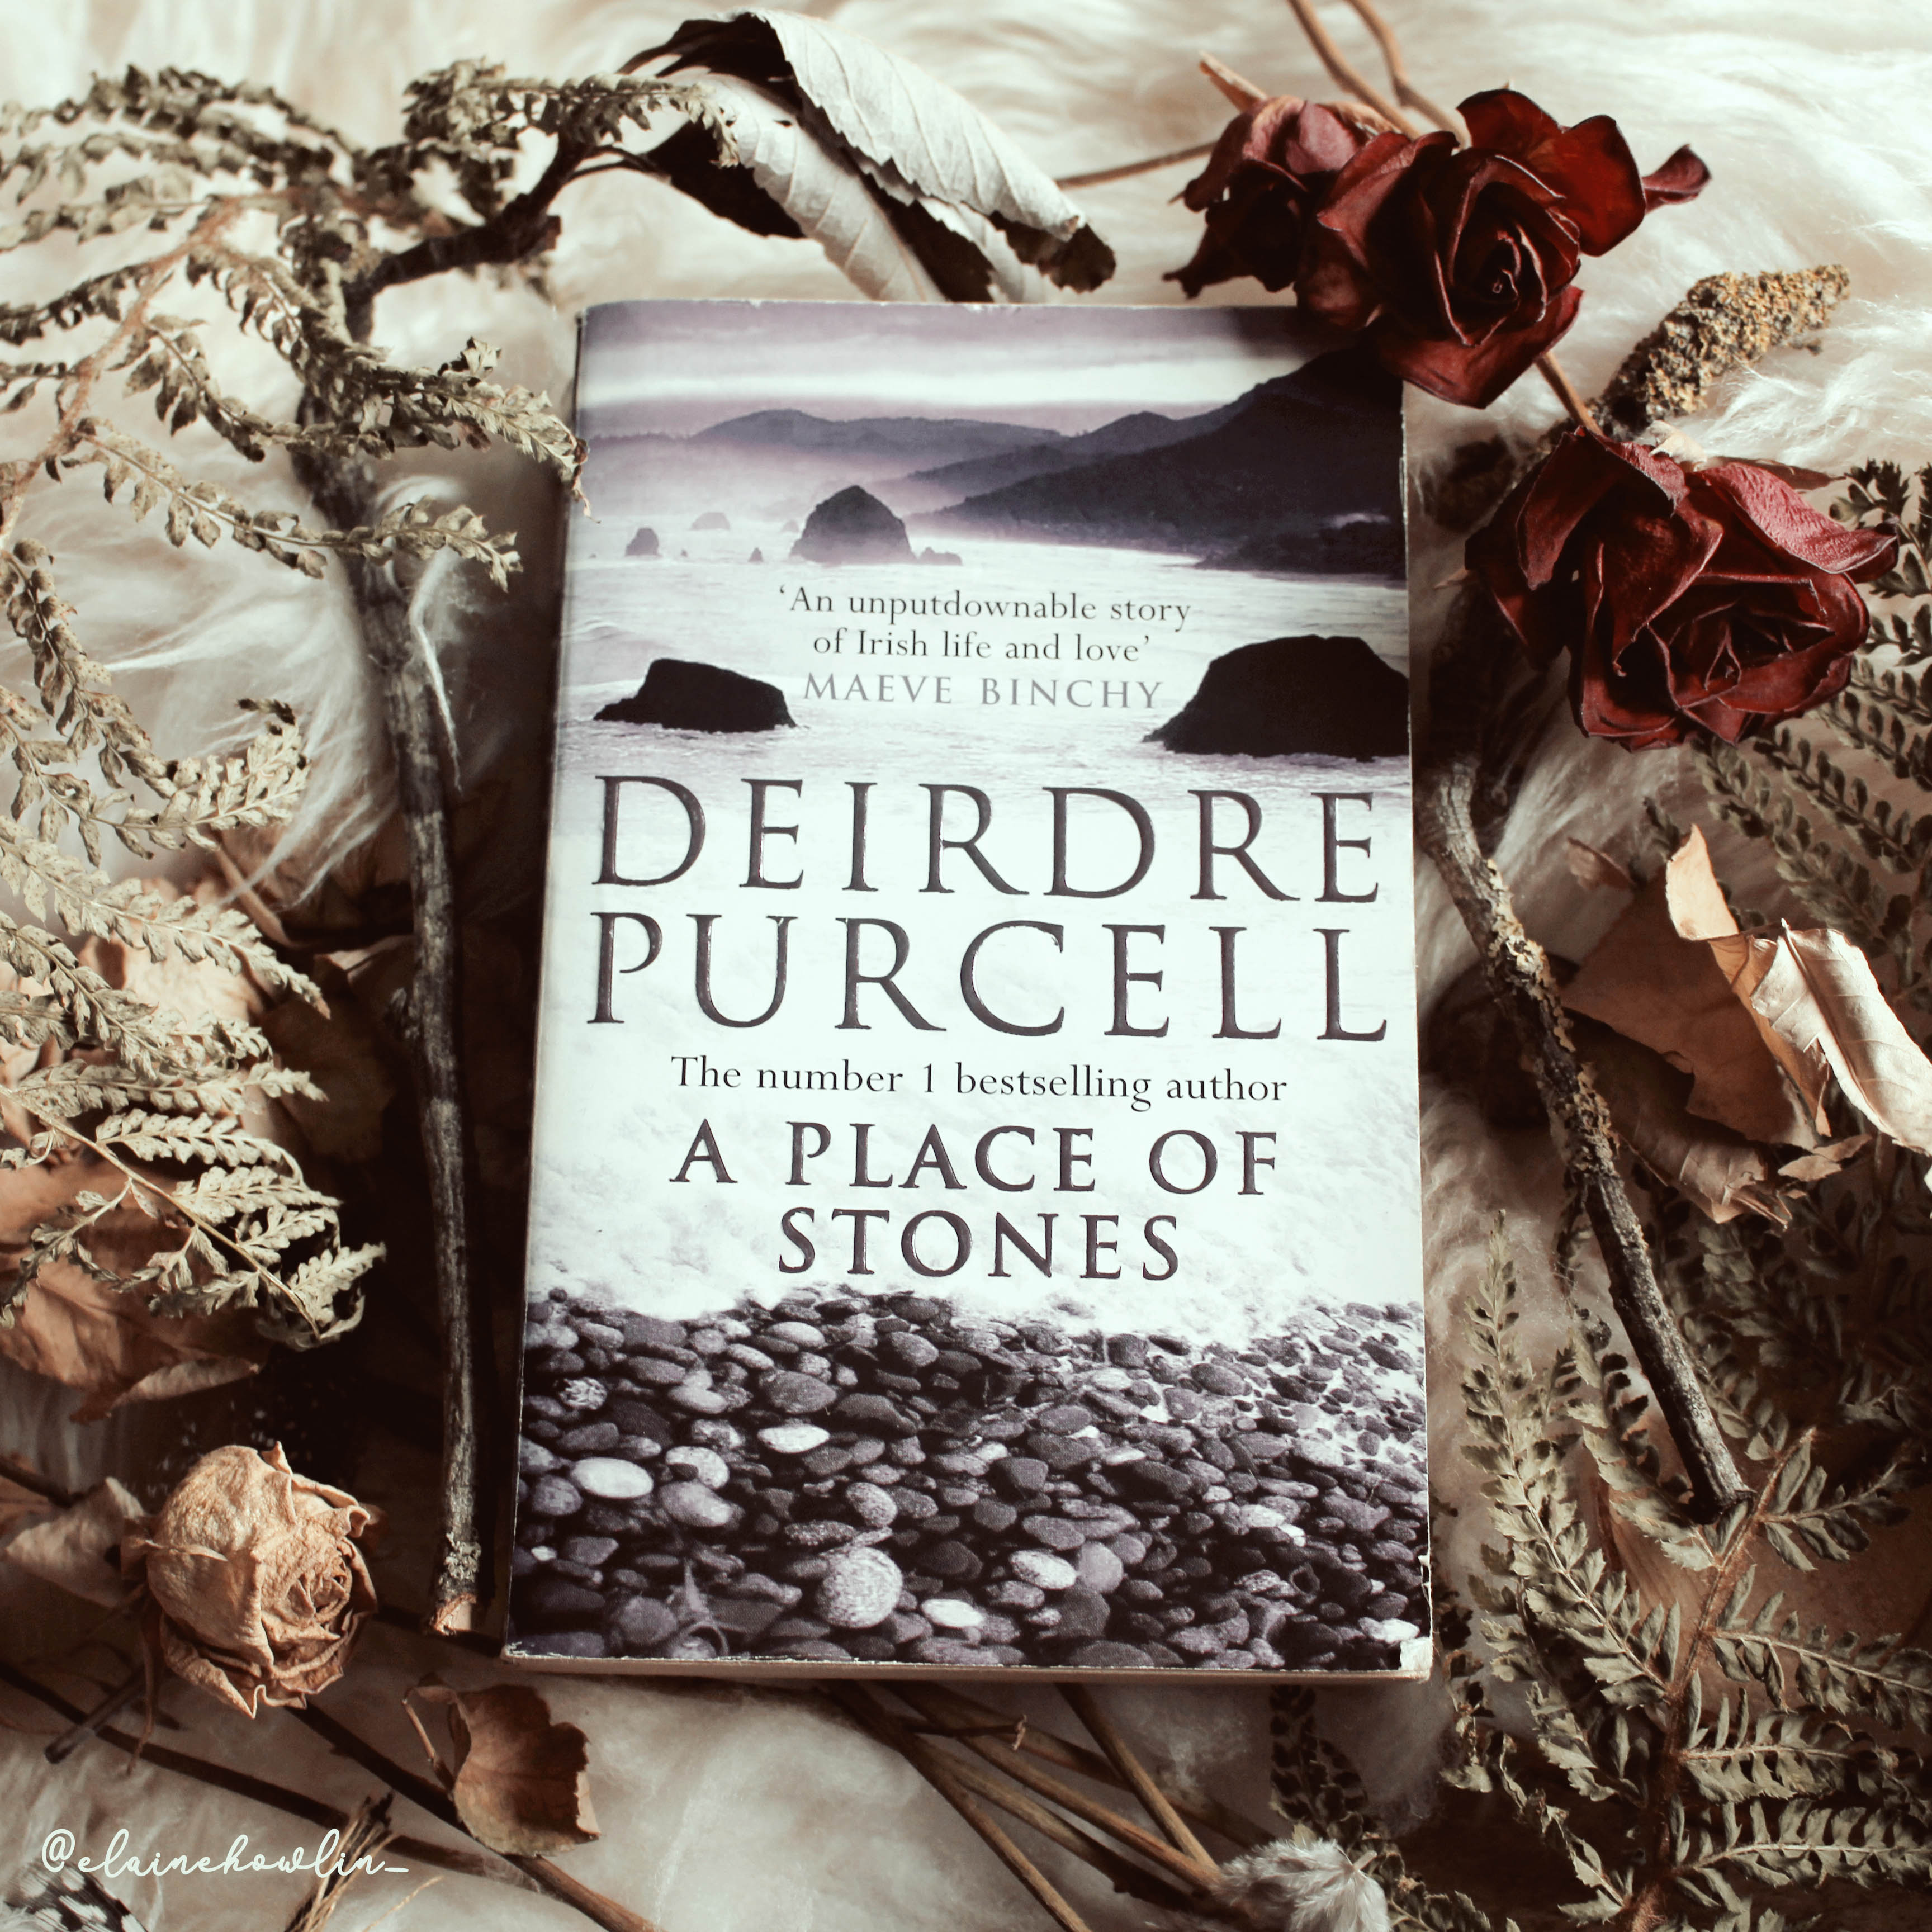 A Place of Stones by Deirdre Purcell Elaine Howlin Literary Blog